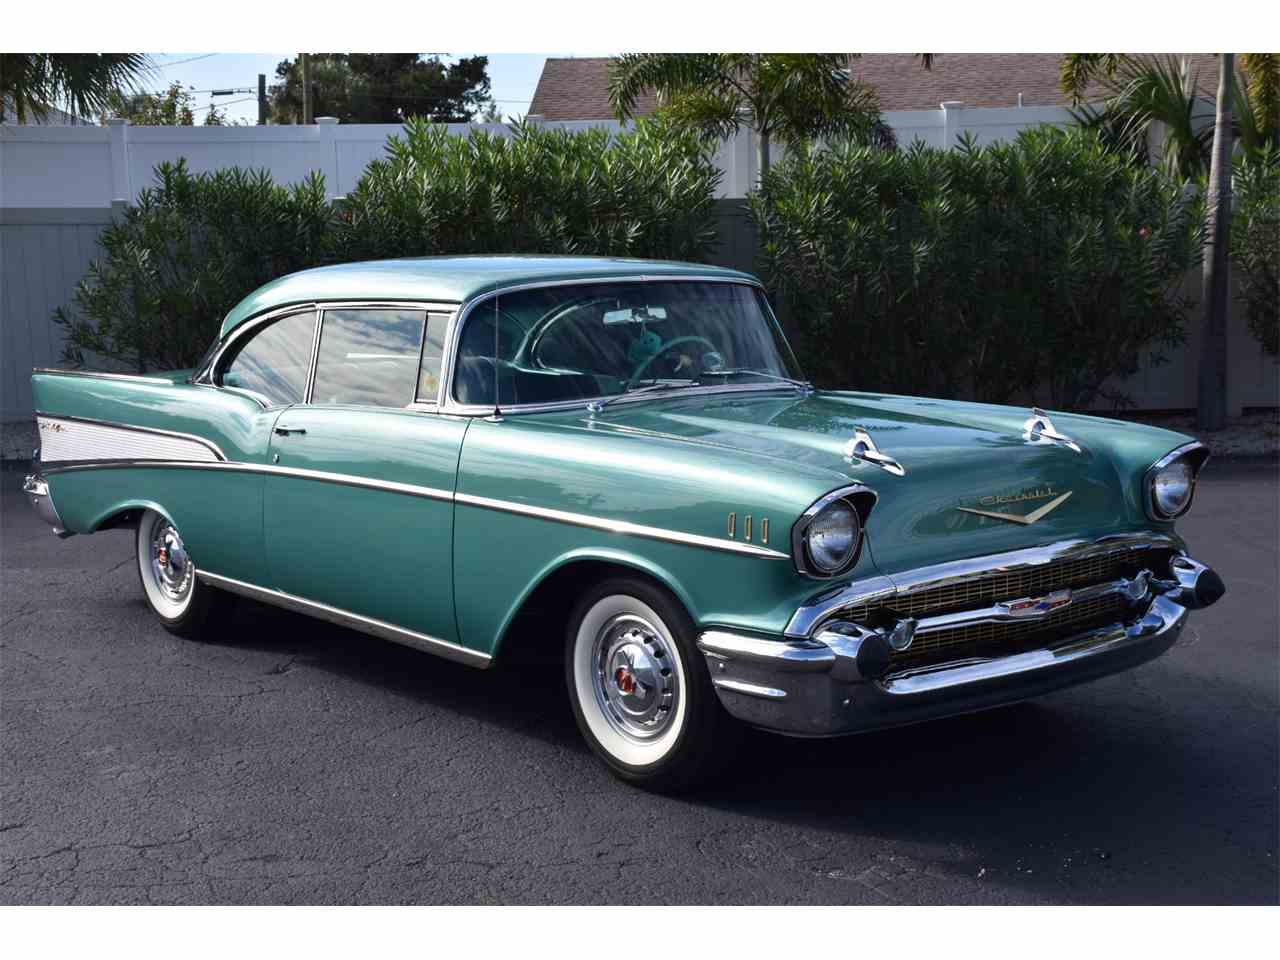 Large Picture of Classic 1957 Chevrolet Bel Air located in Venice Florida Auction Vehicle - MH2G